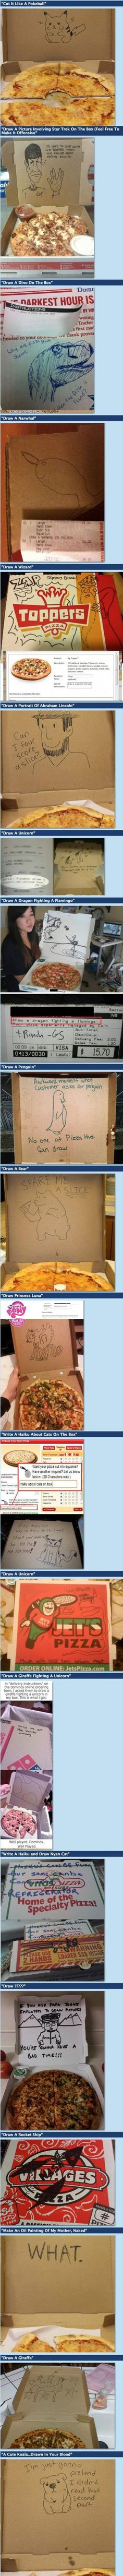 "Super funny pizza delivery ""special instructions"" requests! Can't stop laughing!"